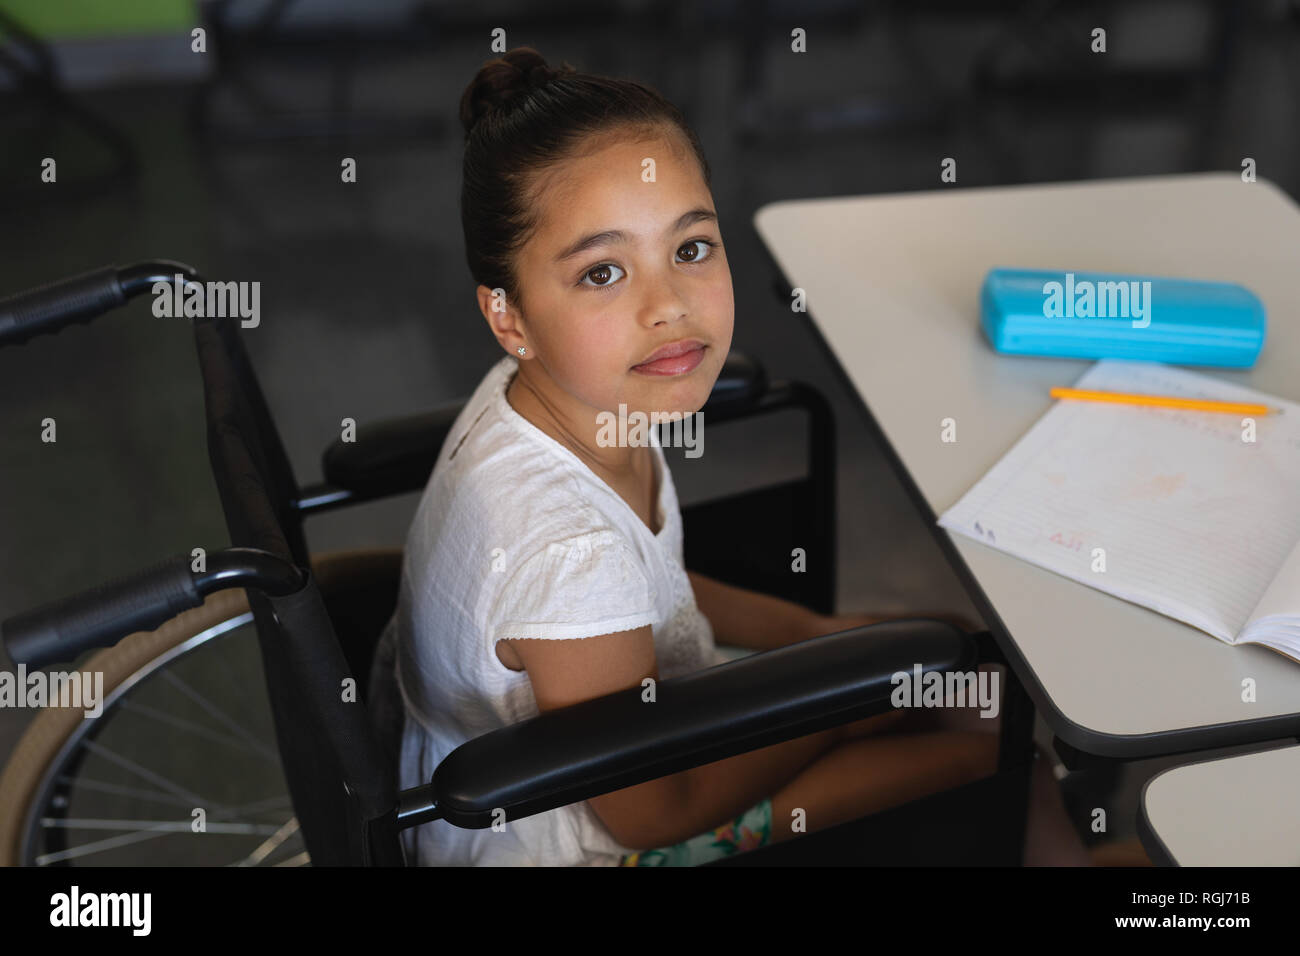 High angle view of disabled schoolgirl looking at camera and sitting at desk in classroom - Stock Image